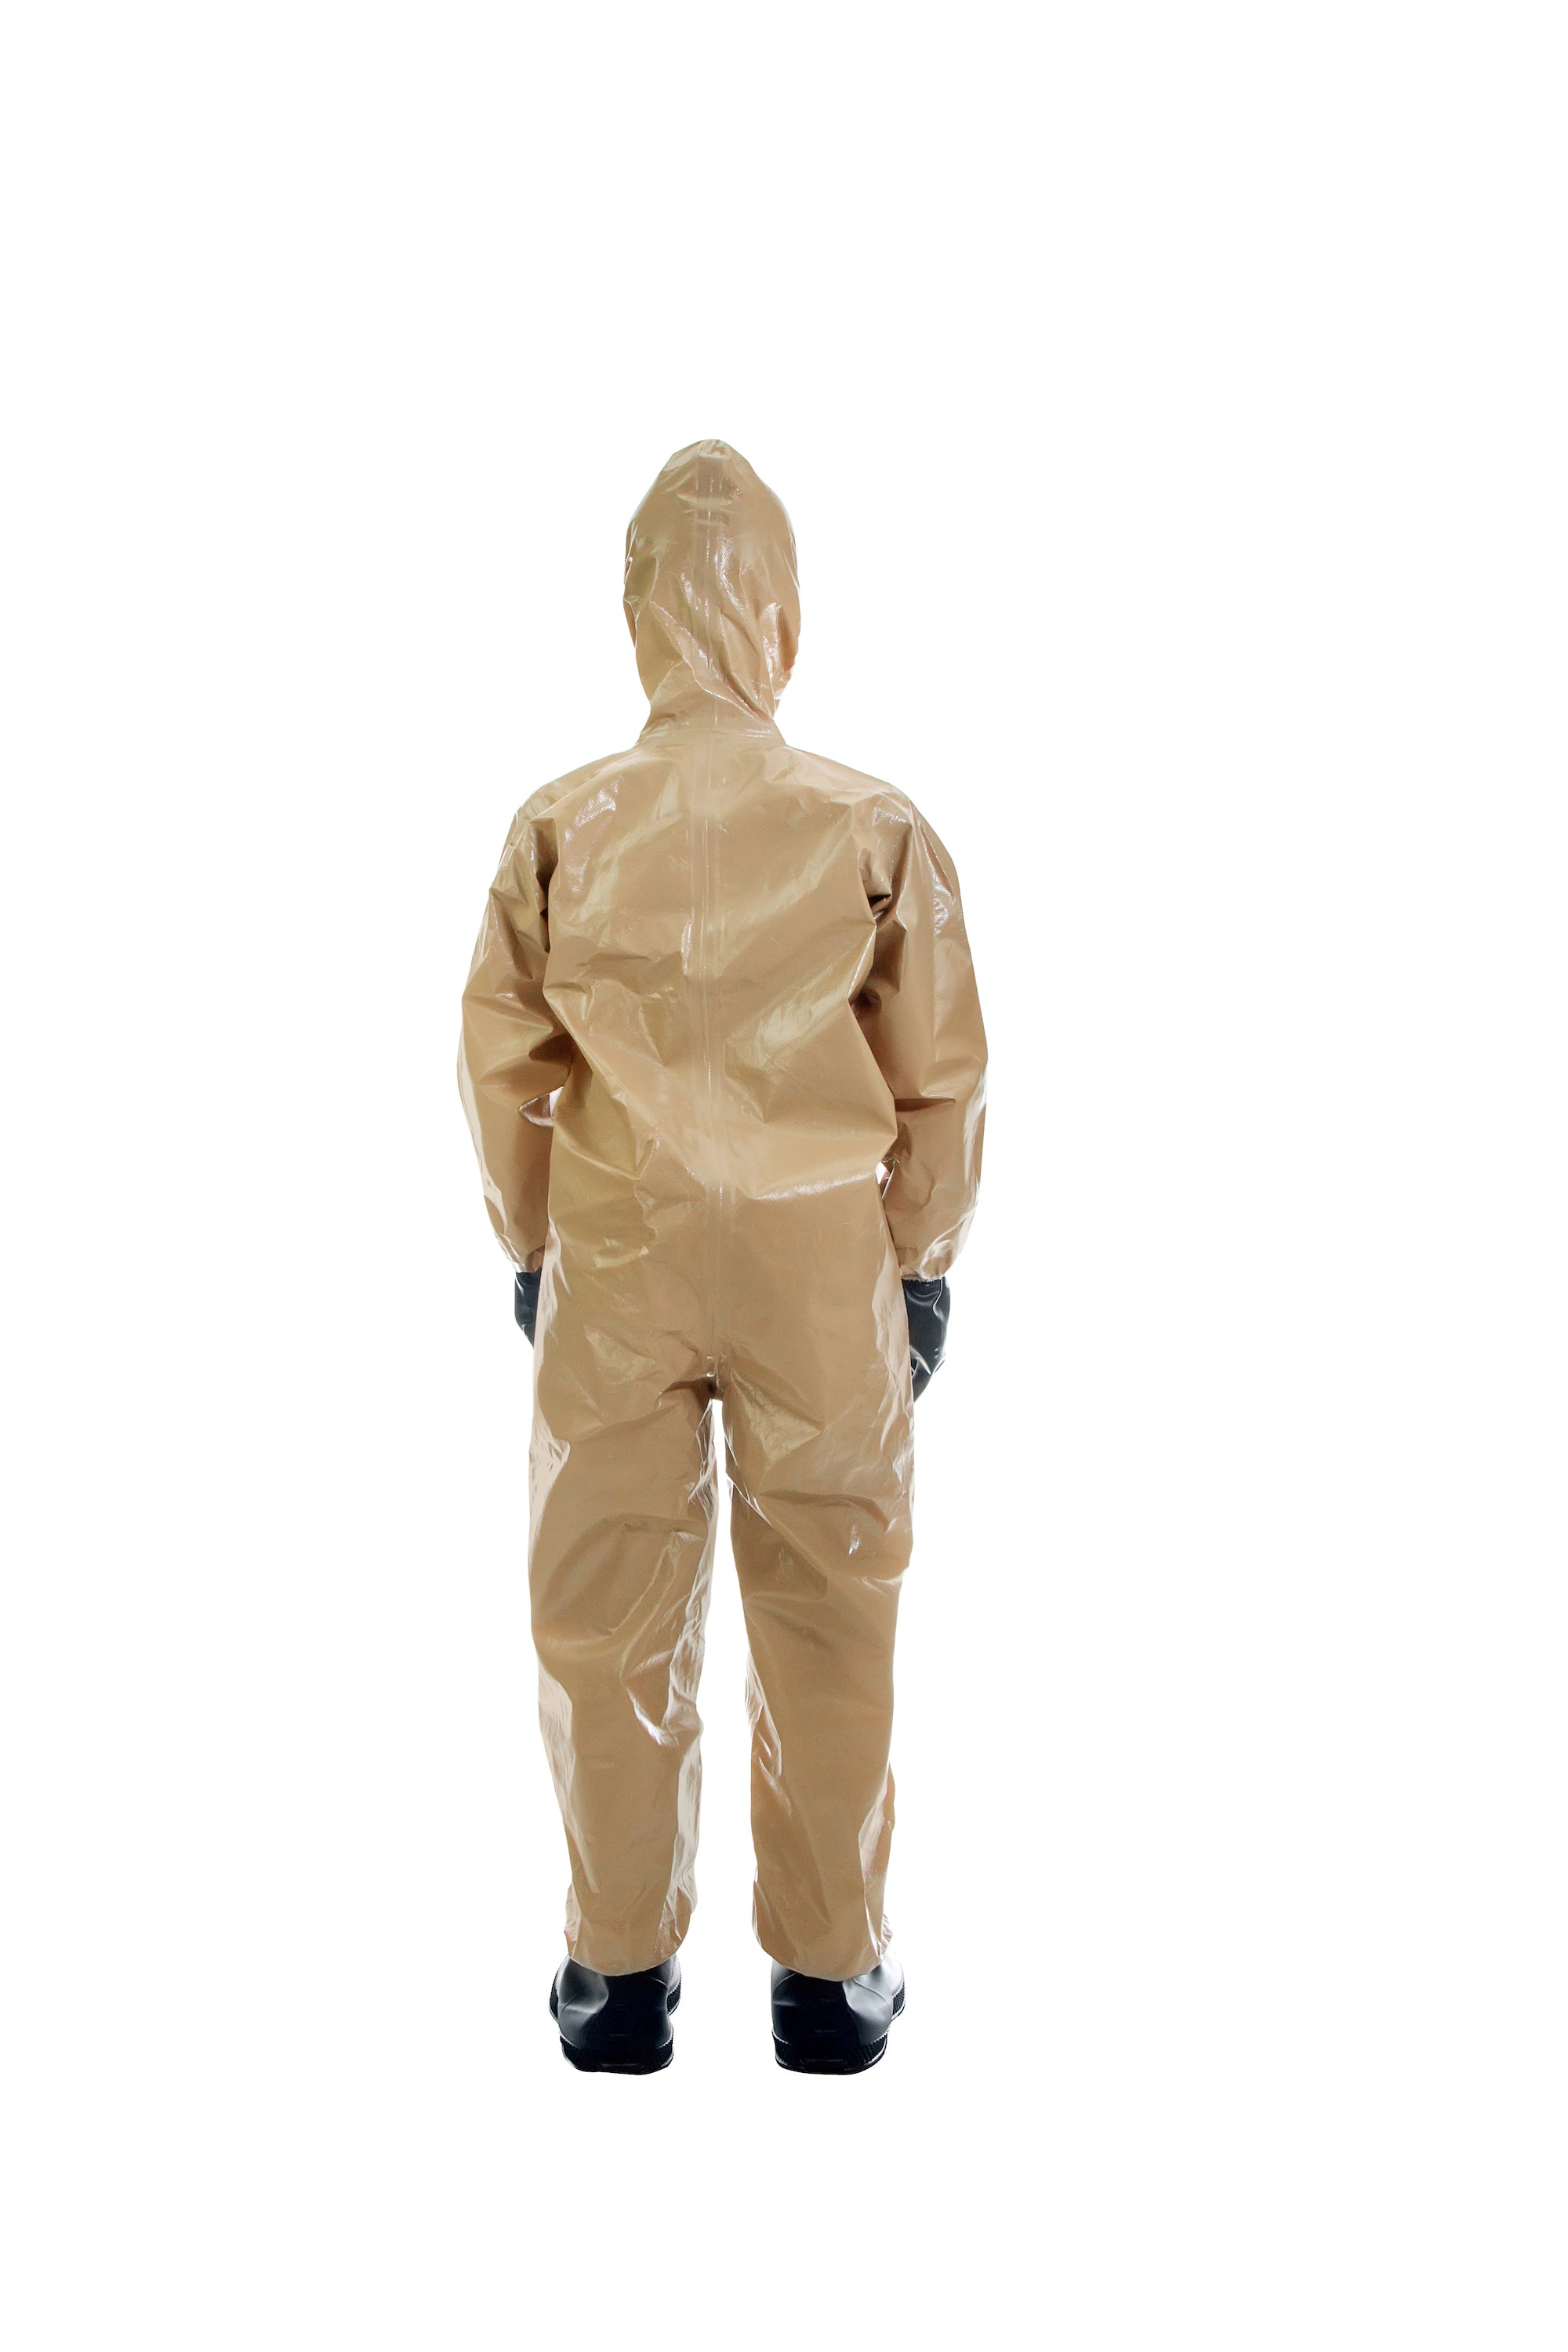 Back view of a child wearing the HAZ-SUIT HAZMAT Suit